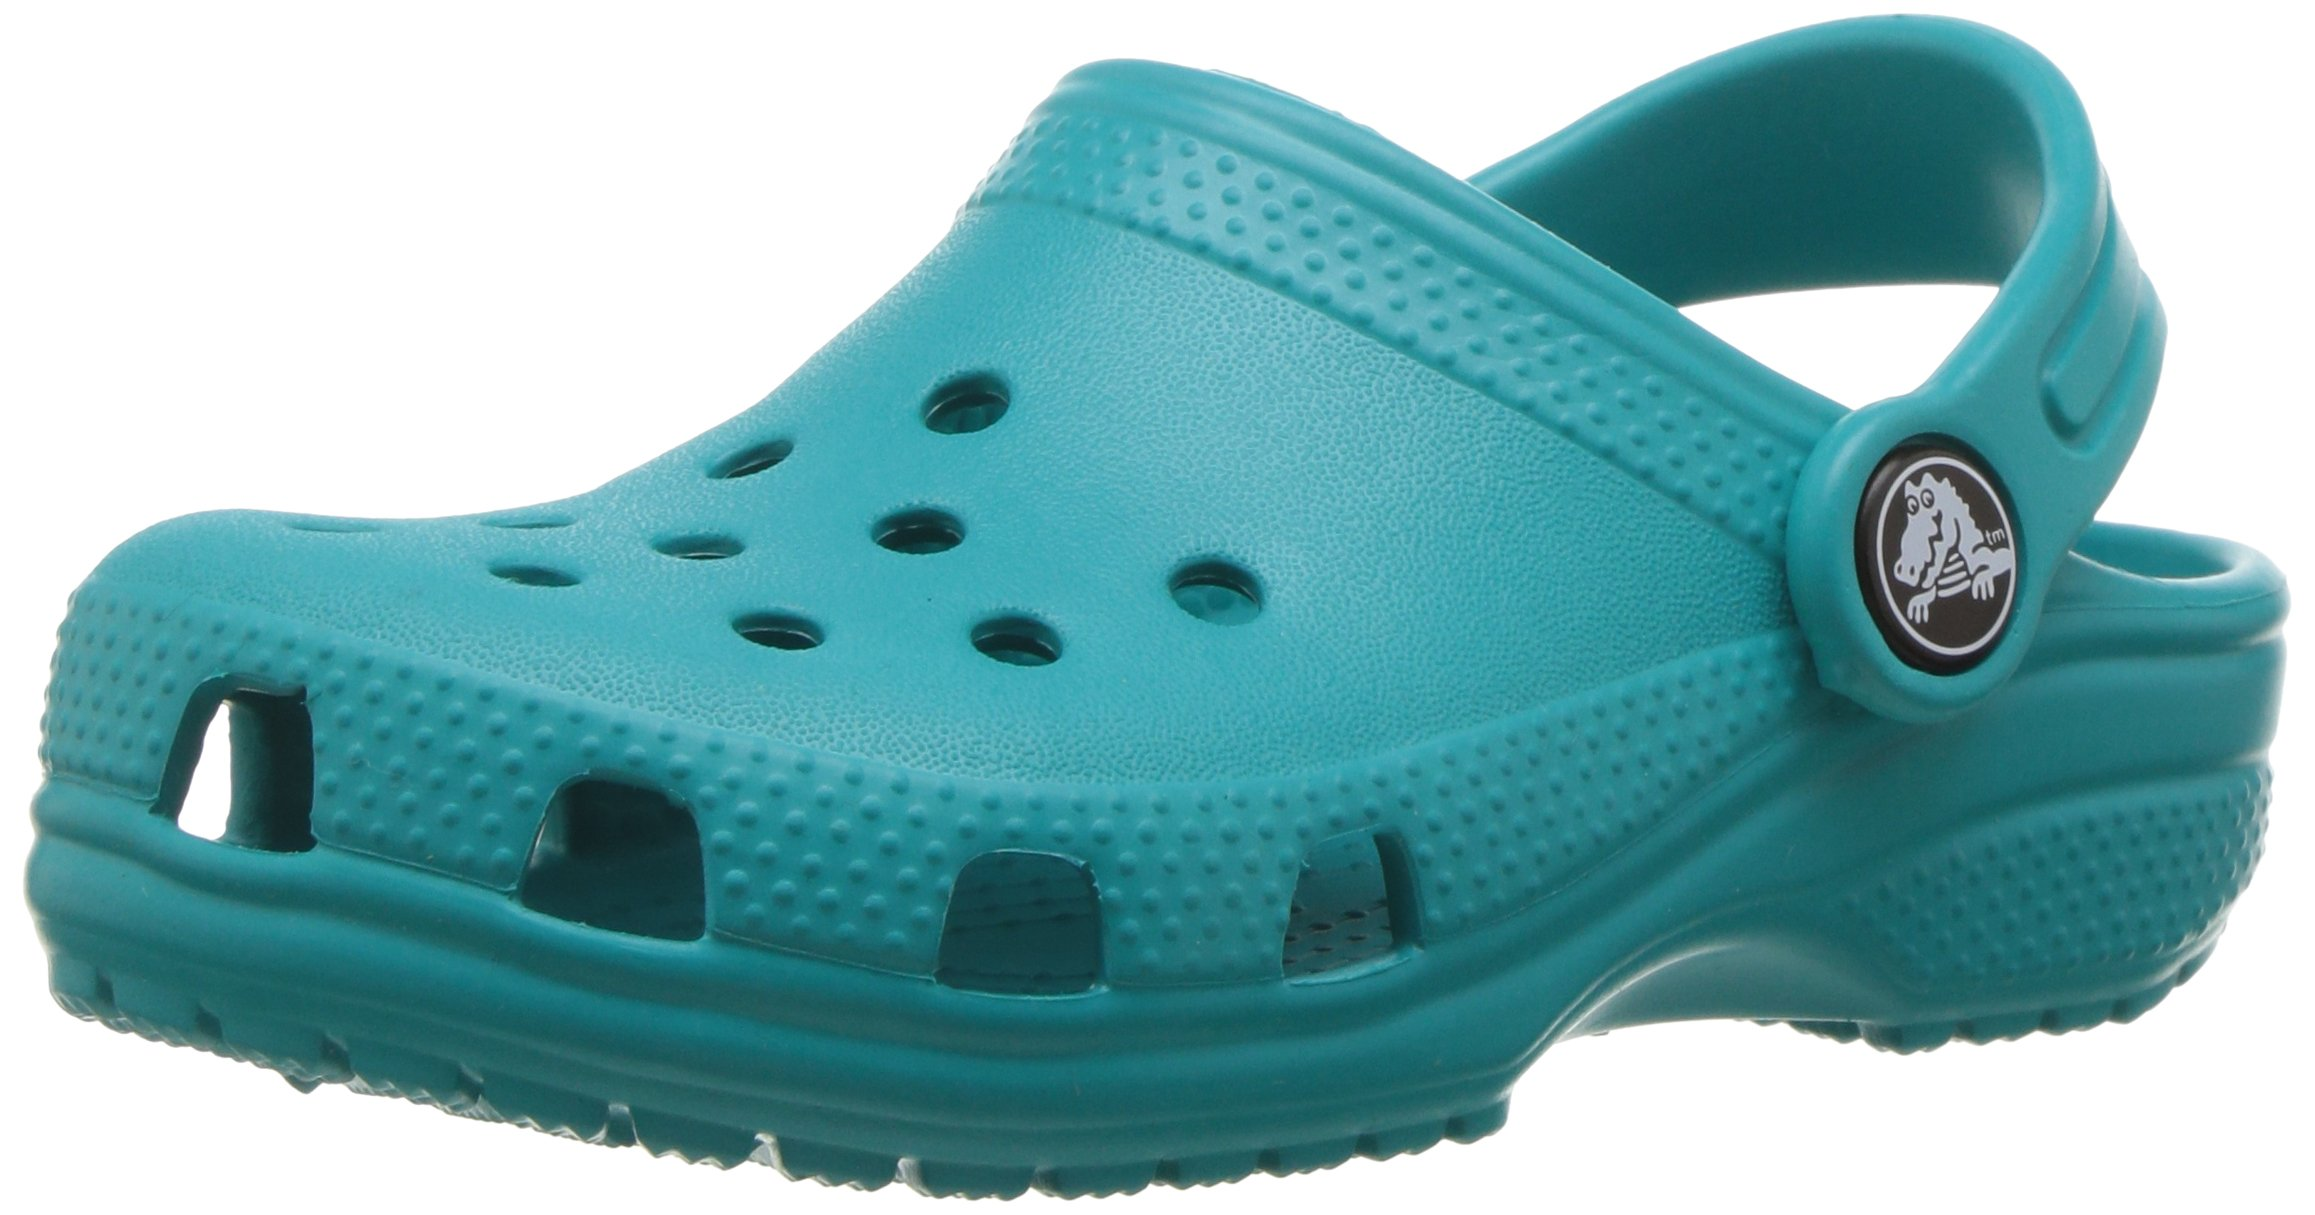 Crocs Kids' Classic Clog, Turquoise, 5 M US Toddler